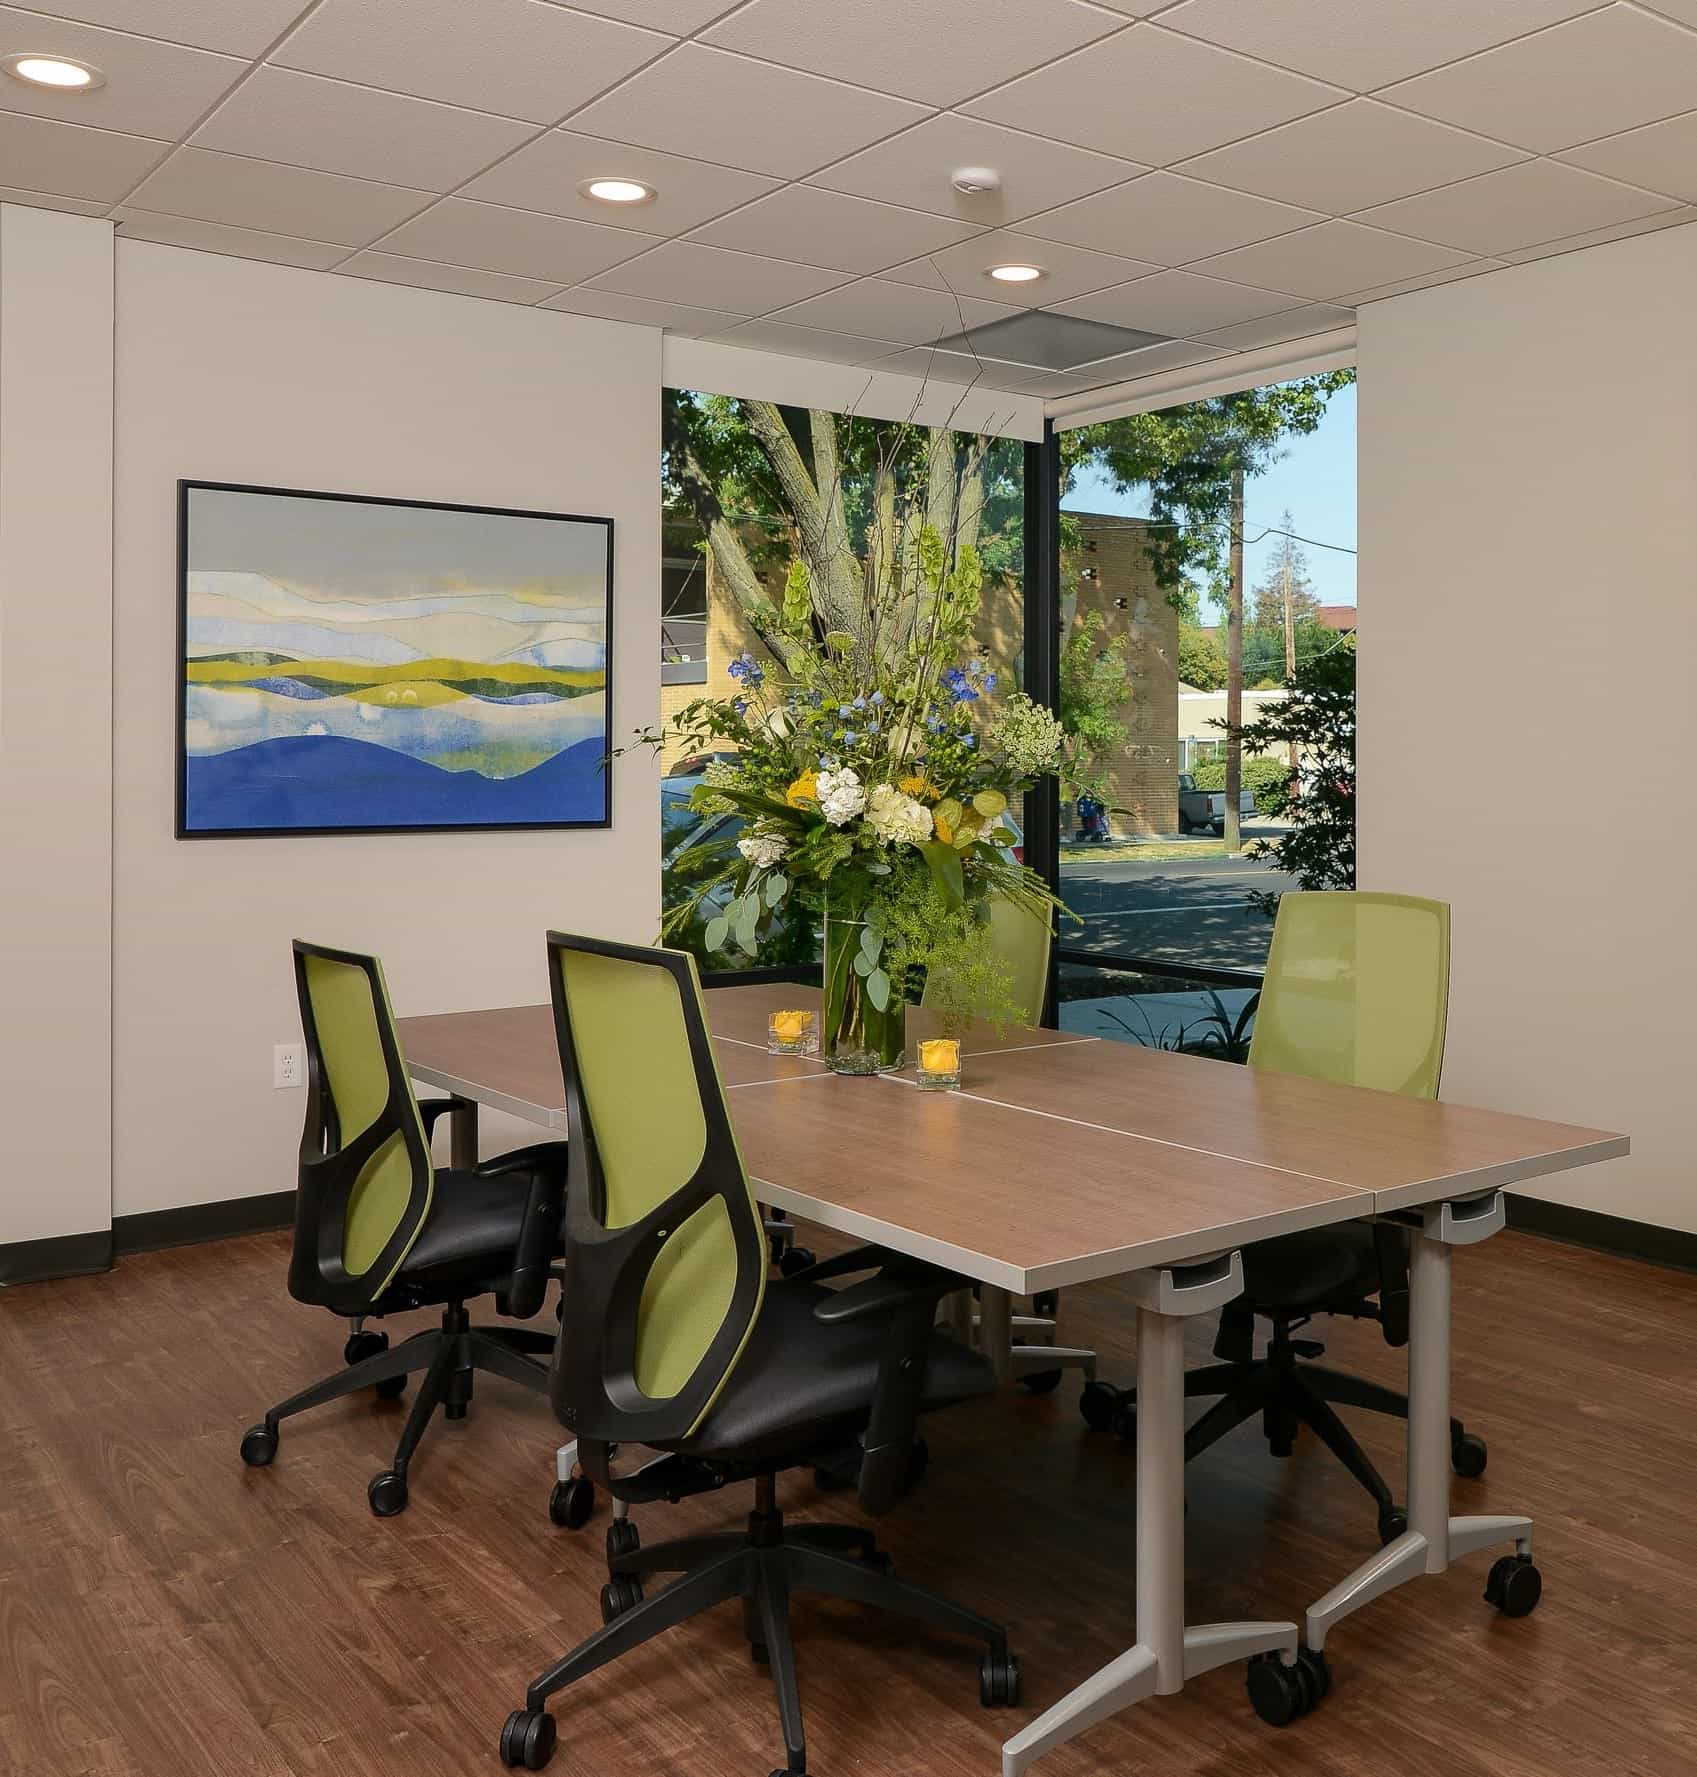 Featured Image of Contemporary Meeting Space With Lime Green Chairs